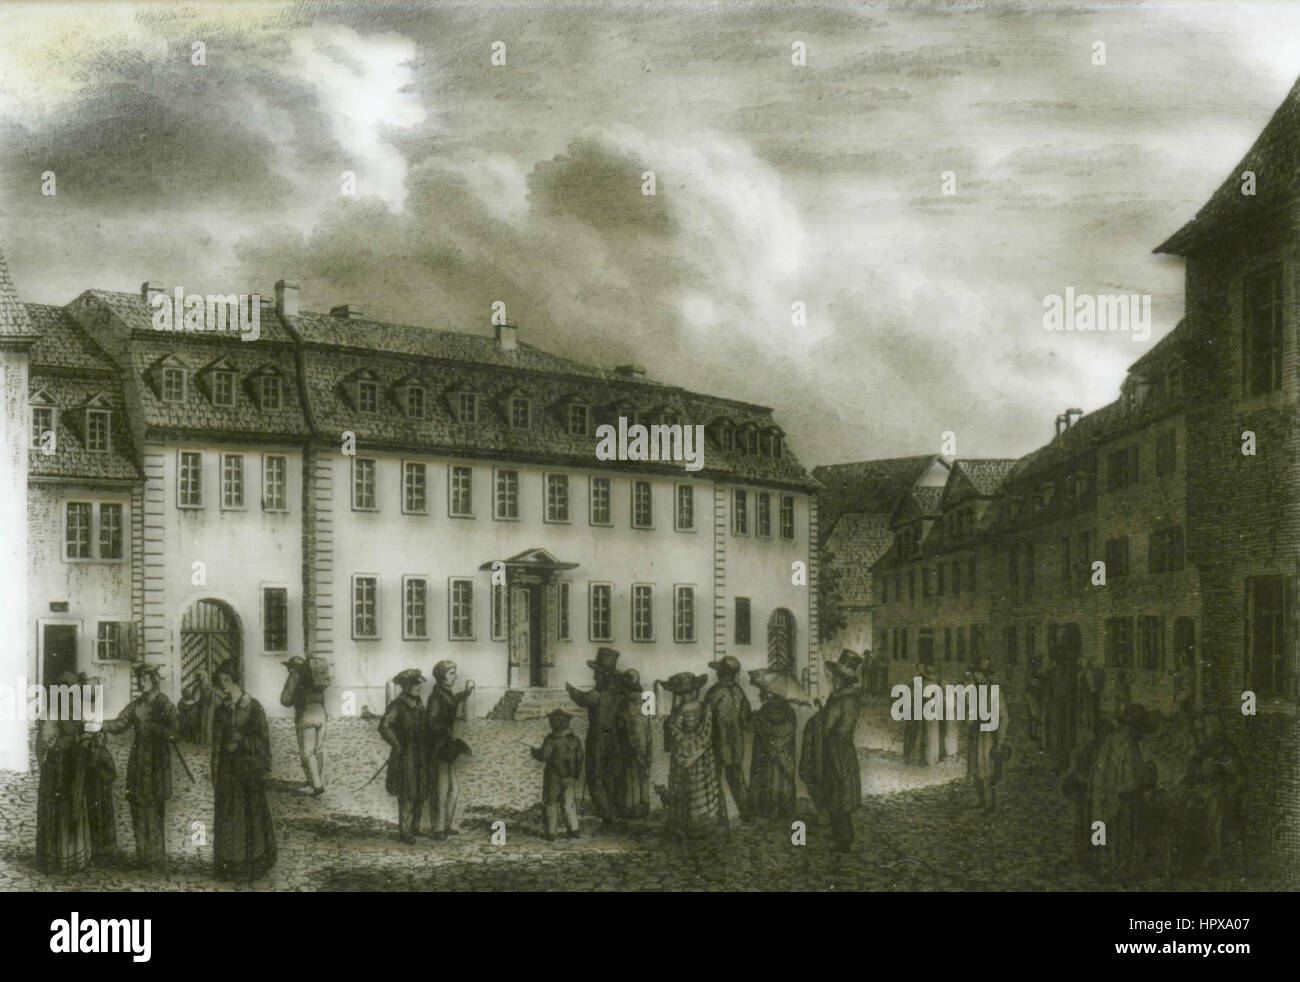 Goethe house in Weimar in 1827, Germany - Stock Image